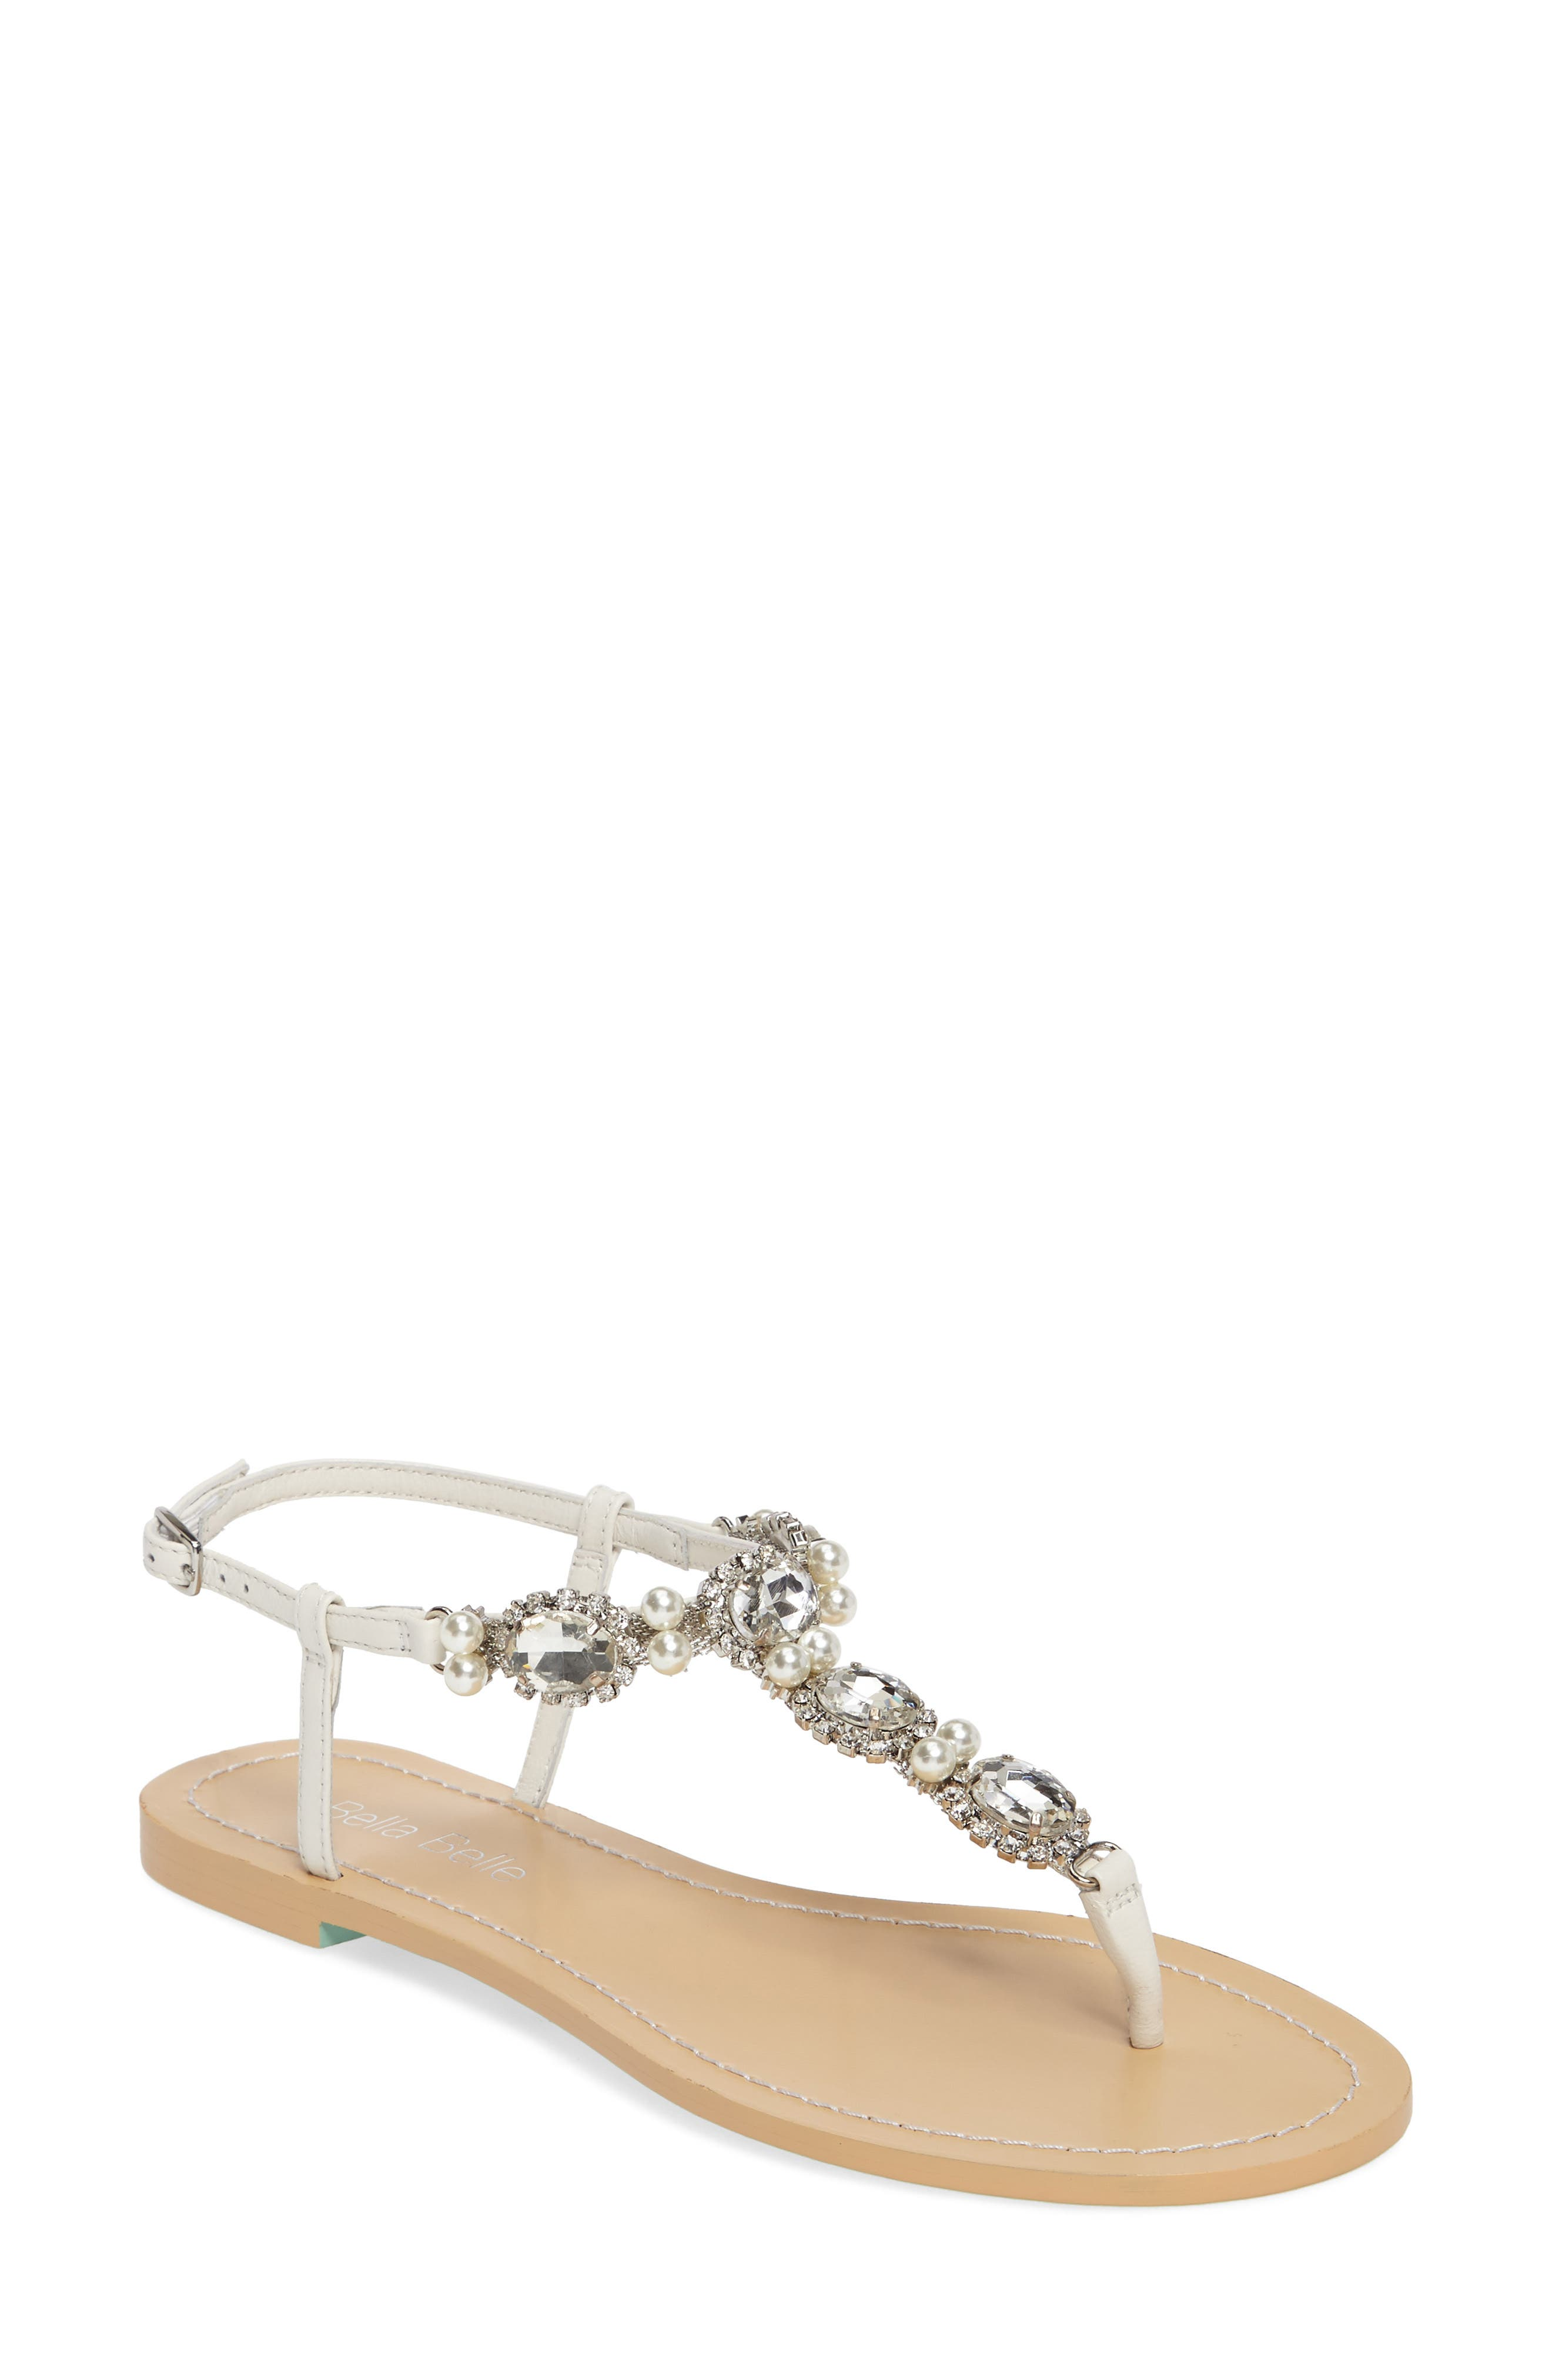 Hera Embellished T-Strap Sandal,                         Main,                         color, OFF WHITE LEATHER